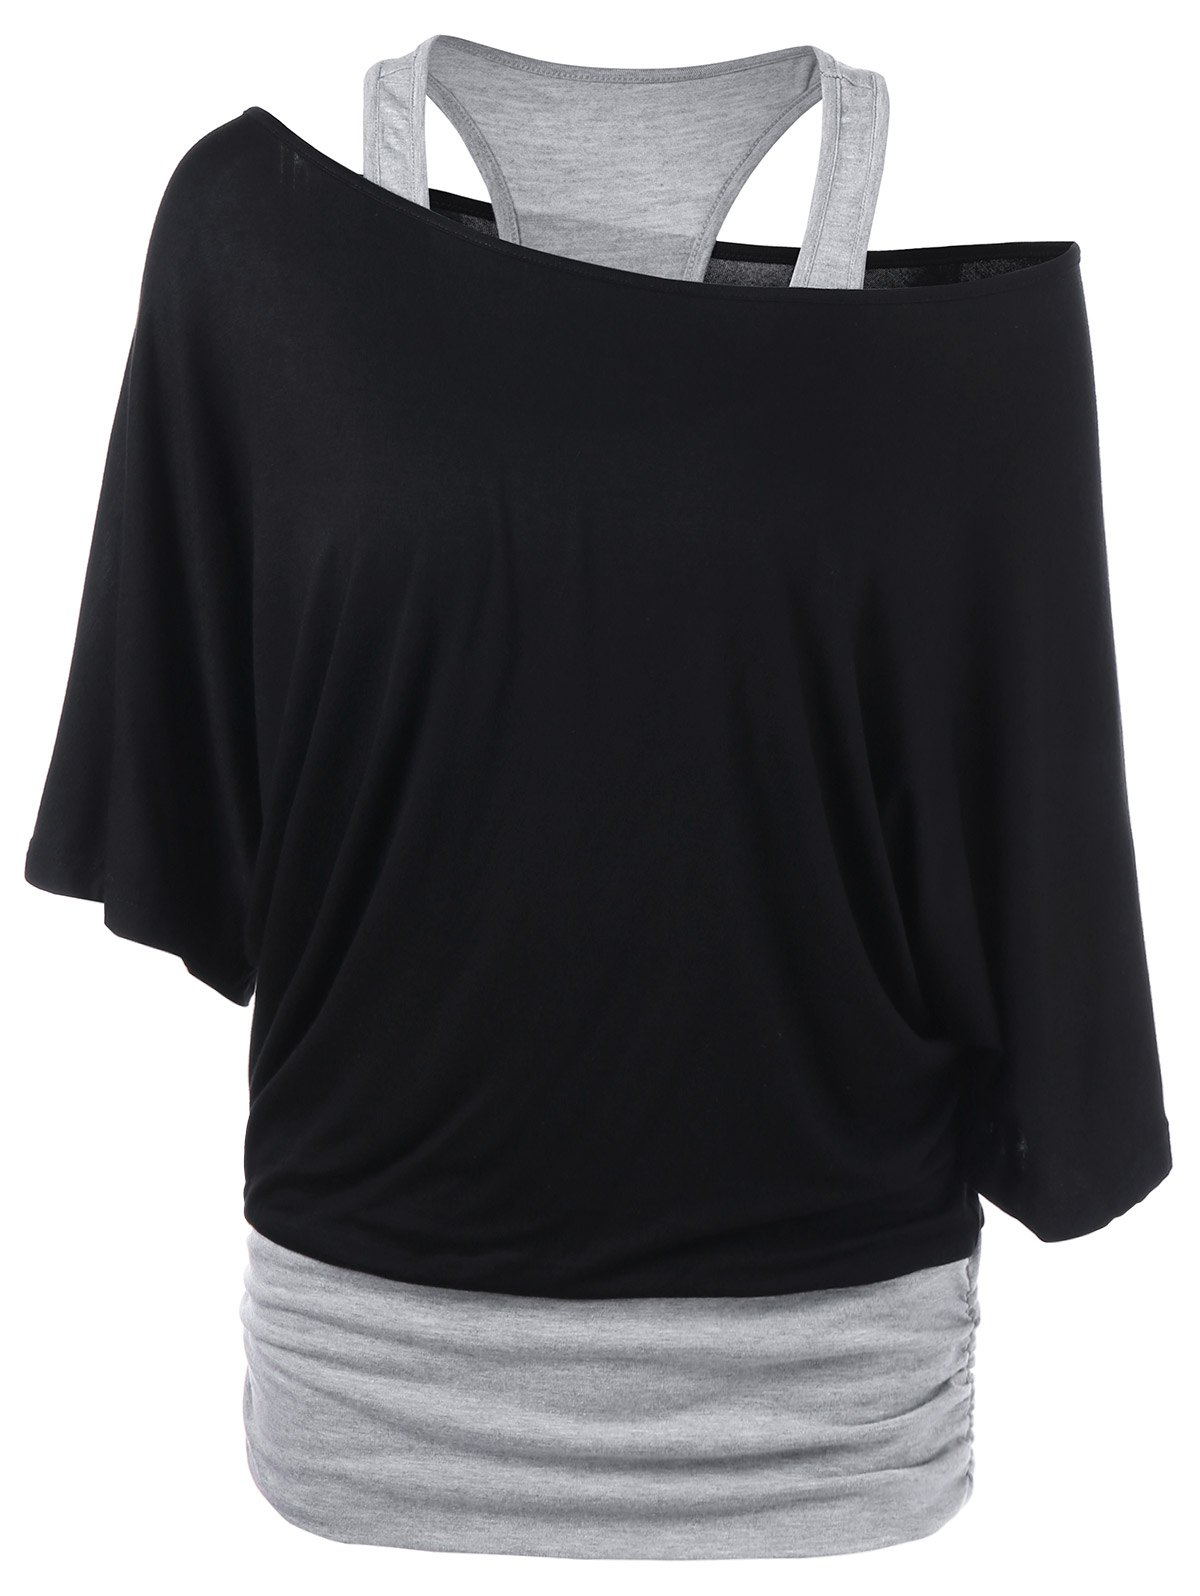 Skew Neck Racerback Two Tone T-ShirtWOMEN<br><br>Size: XL; Color: BLACK AND GREY; Material: Rayon,Spandex; Shirt Length: Regular; Sleeve Length: Half; Collar: Skew Collar; Style: Casual; Season: Summer; Pattern Type: Solid; Weight: 0.3500kg; Package Contents: 1 x T-Shirt;